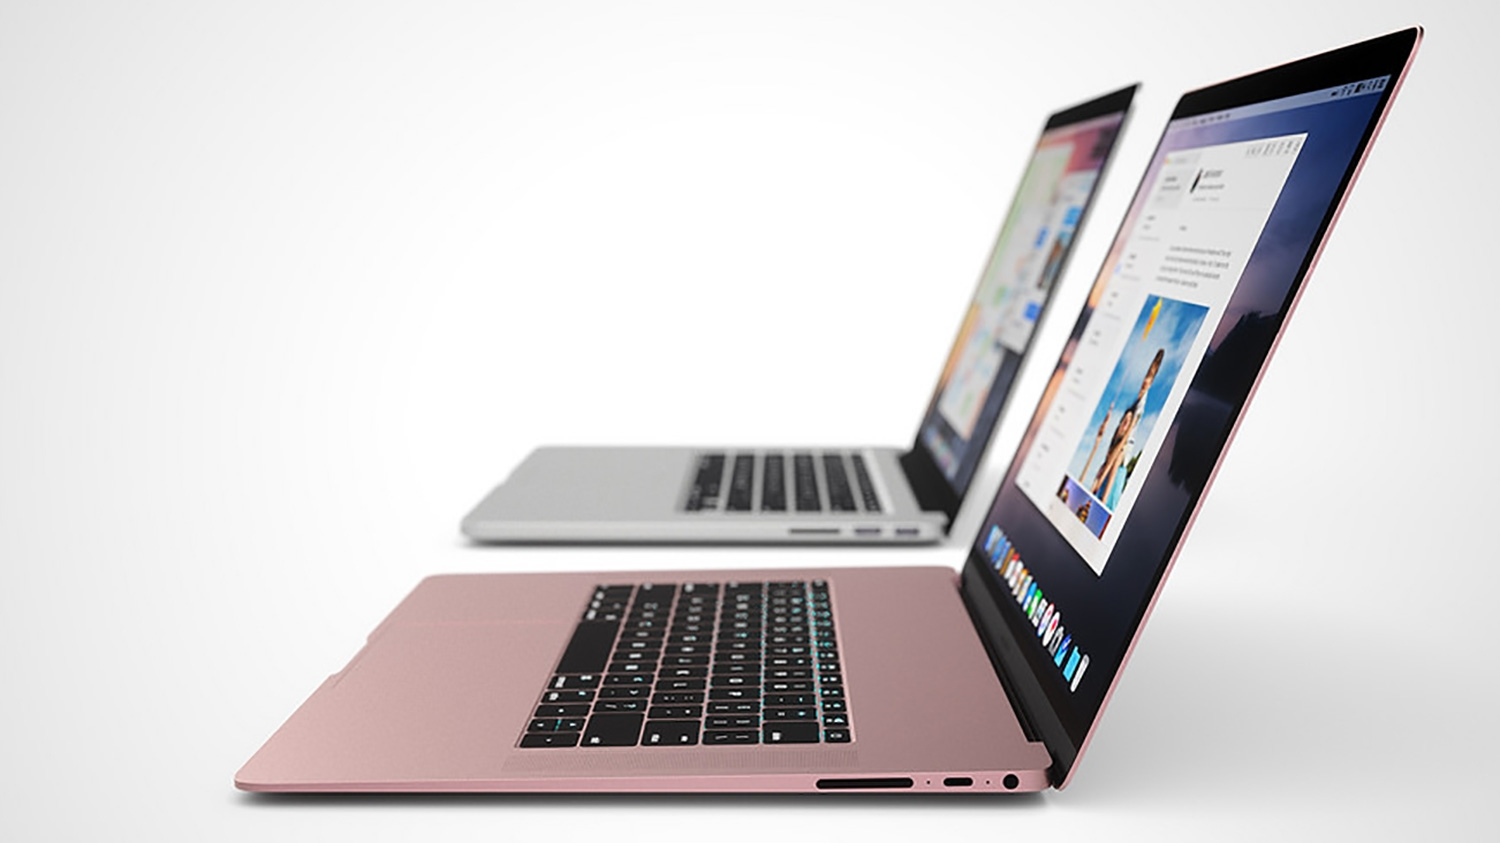 Apple 39 s new macbook pro 39 coming in october 39 news for Apple product book